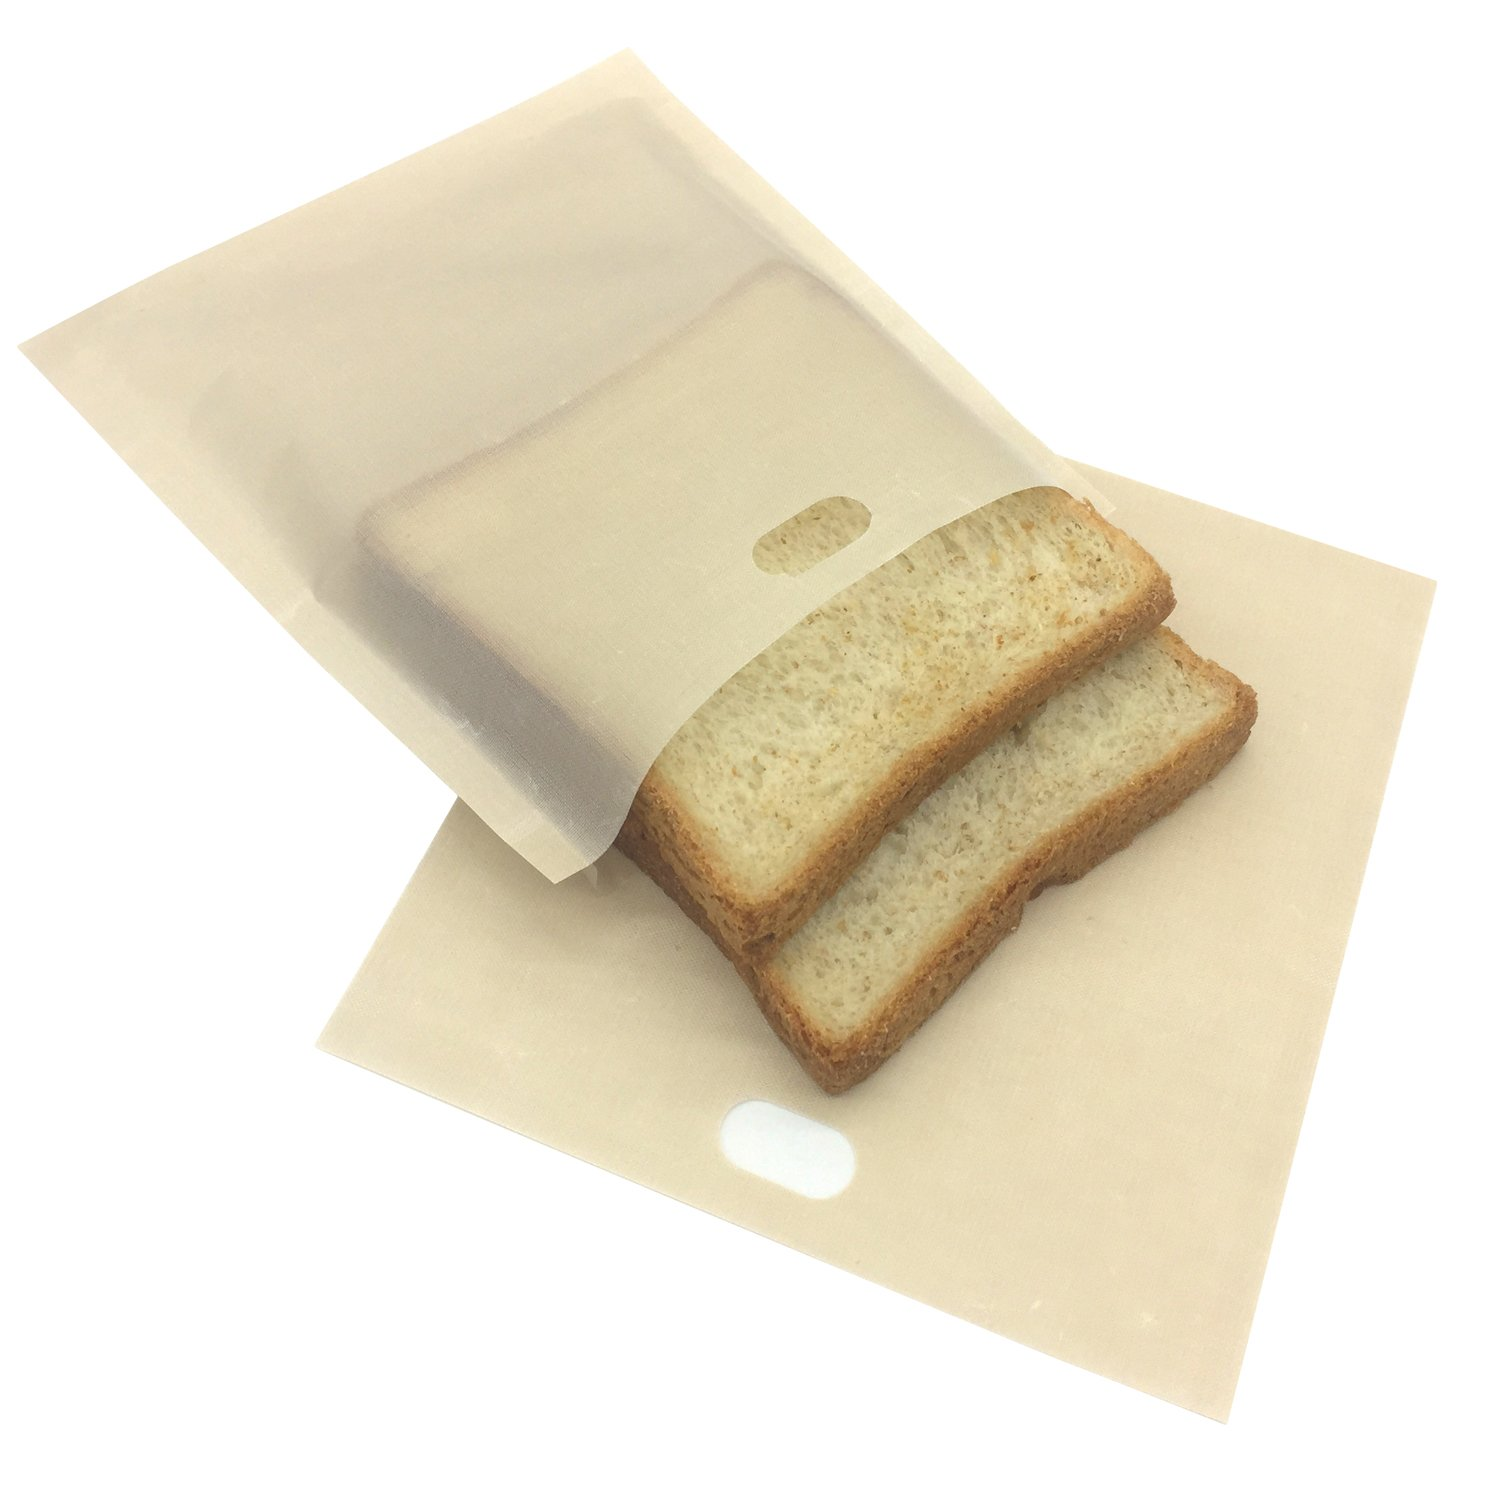 Toaster Bags (Set of 8) by YOUR SMILE 100% Non Stick and Reusable Easy To Clean Perfect For Sandwiches Hot Dogs Chicken Fish Vegetables Panini & Garlic Toast